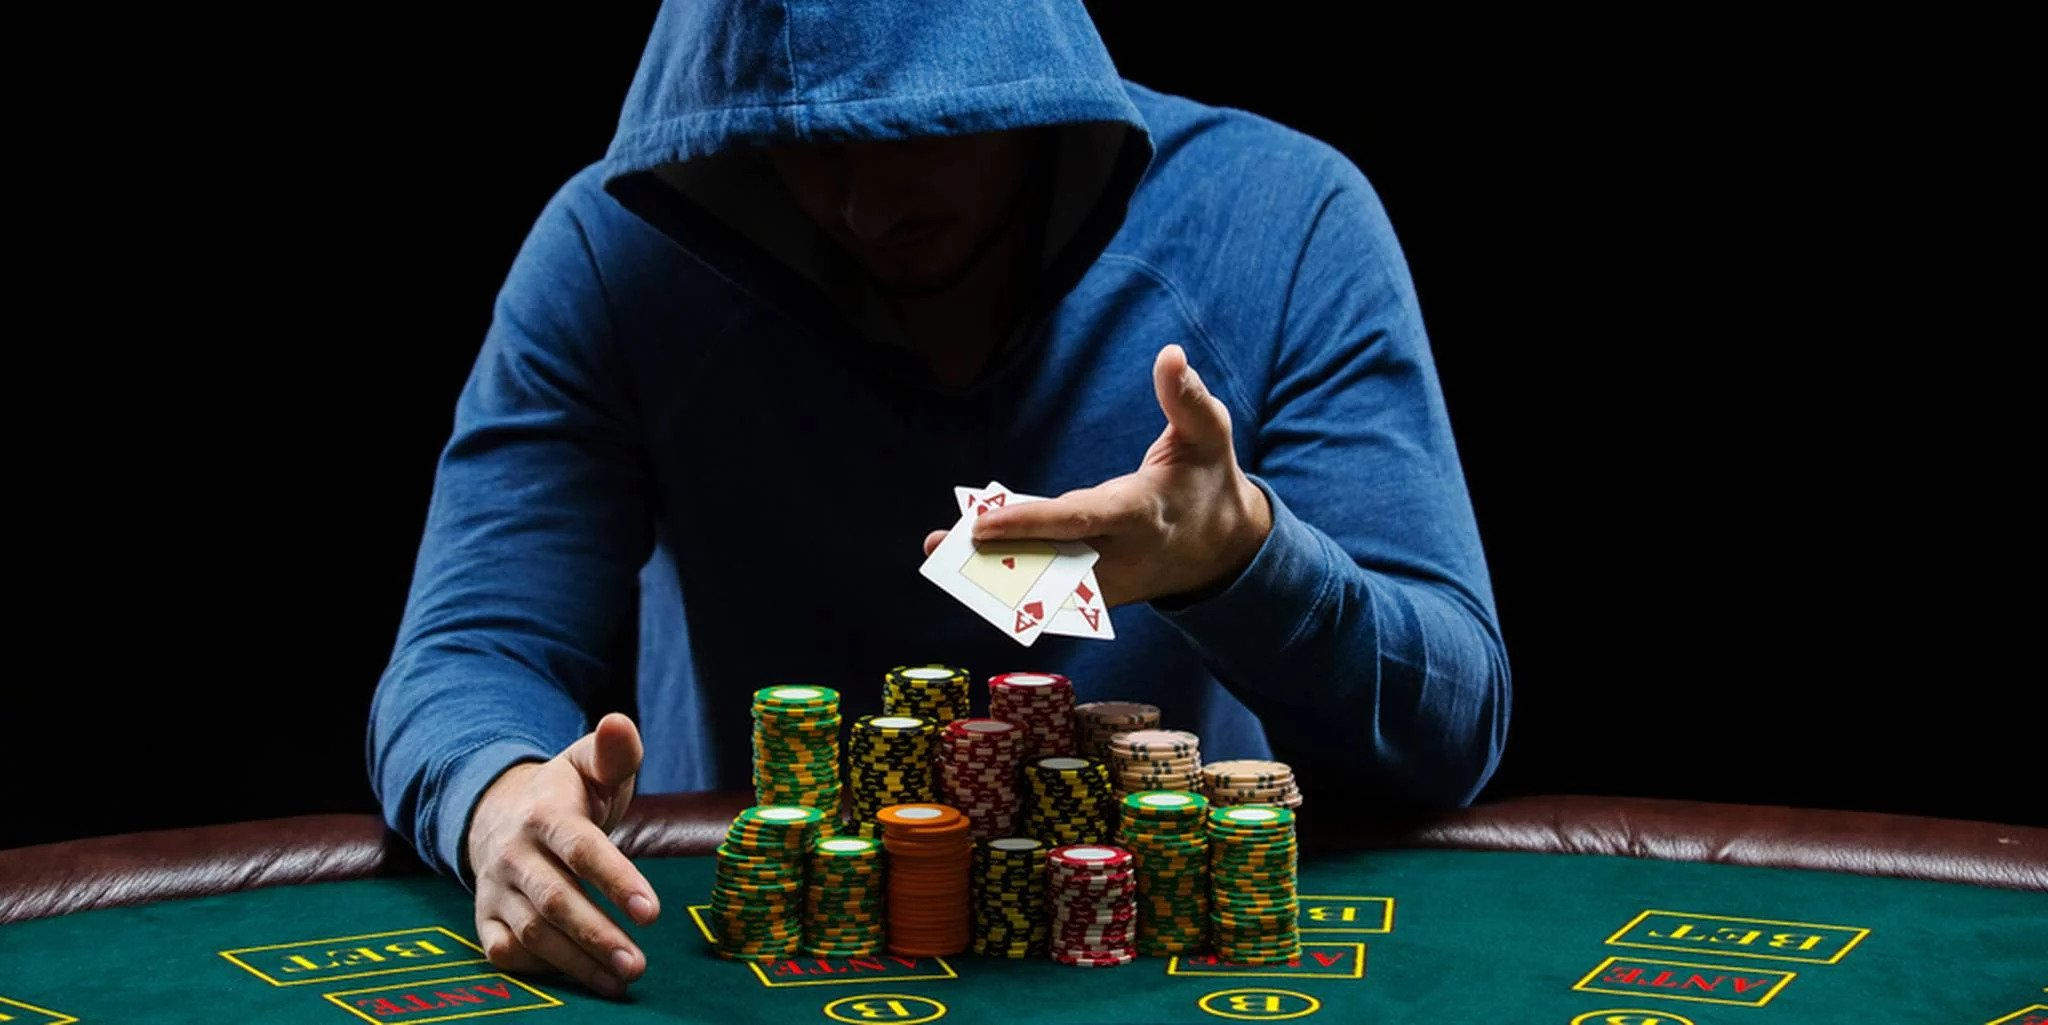 Methods For Cheating In Casinos